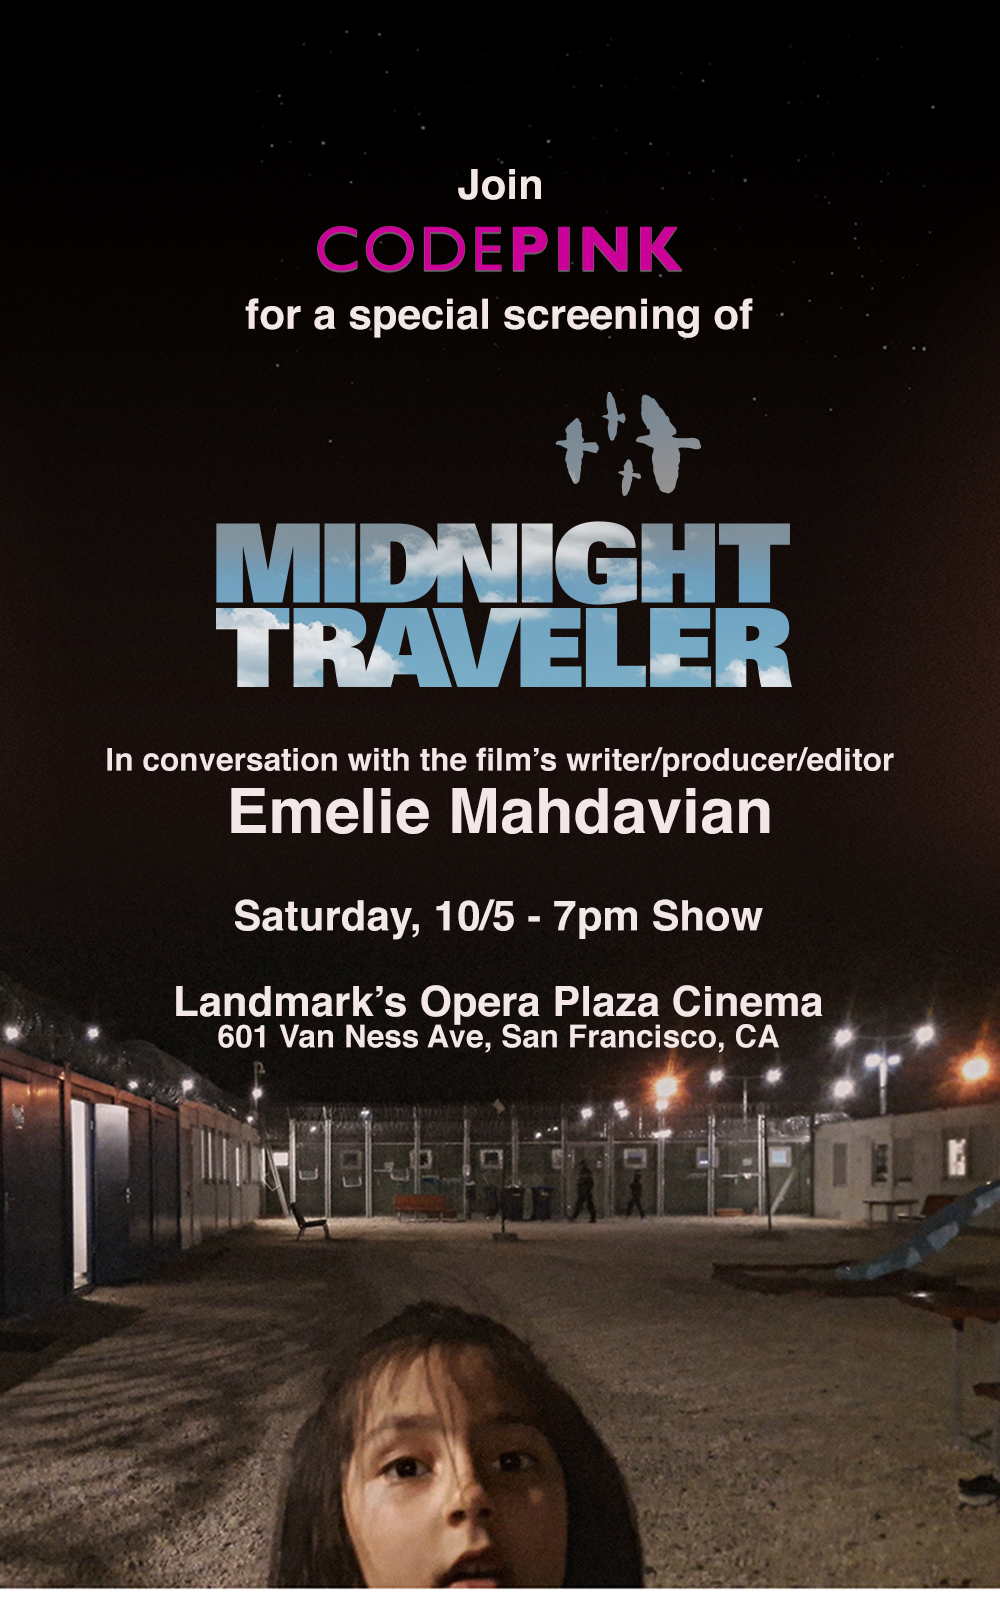 SF October 5: CODEPINK Screening of Midnight Traveler with Q&A ...